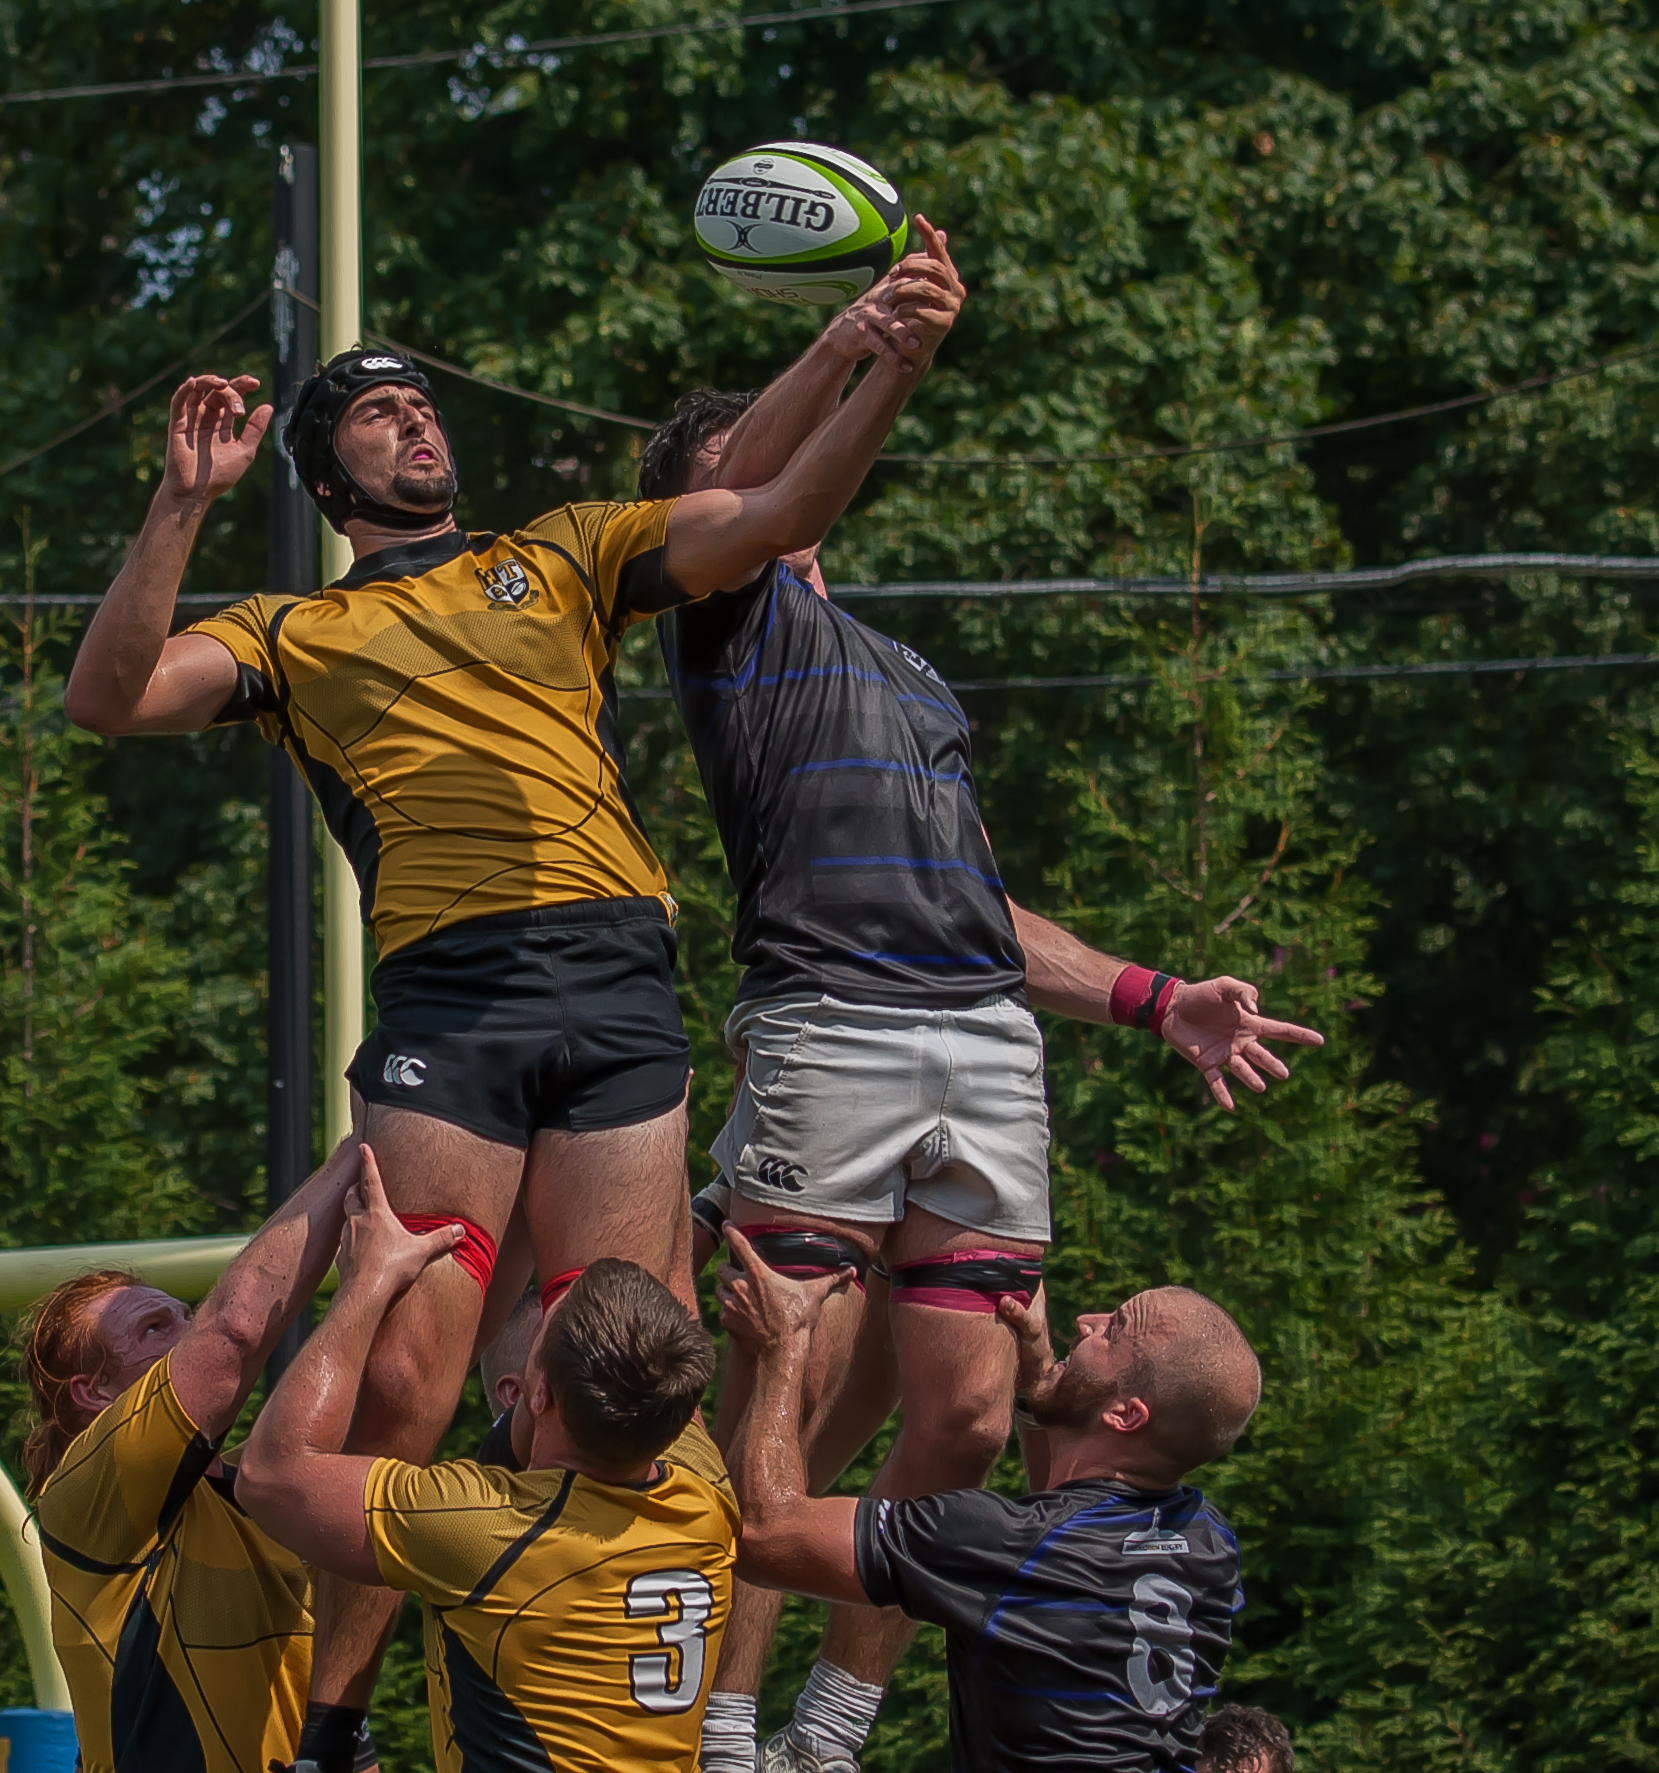 Towson University v James Madison rugby fall 2016. Colleen McCloskey photo for Goff Rugby Report.